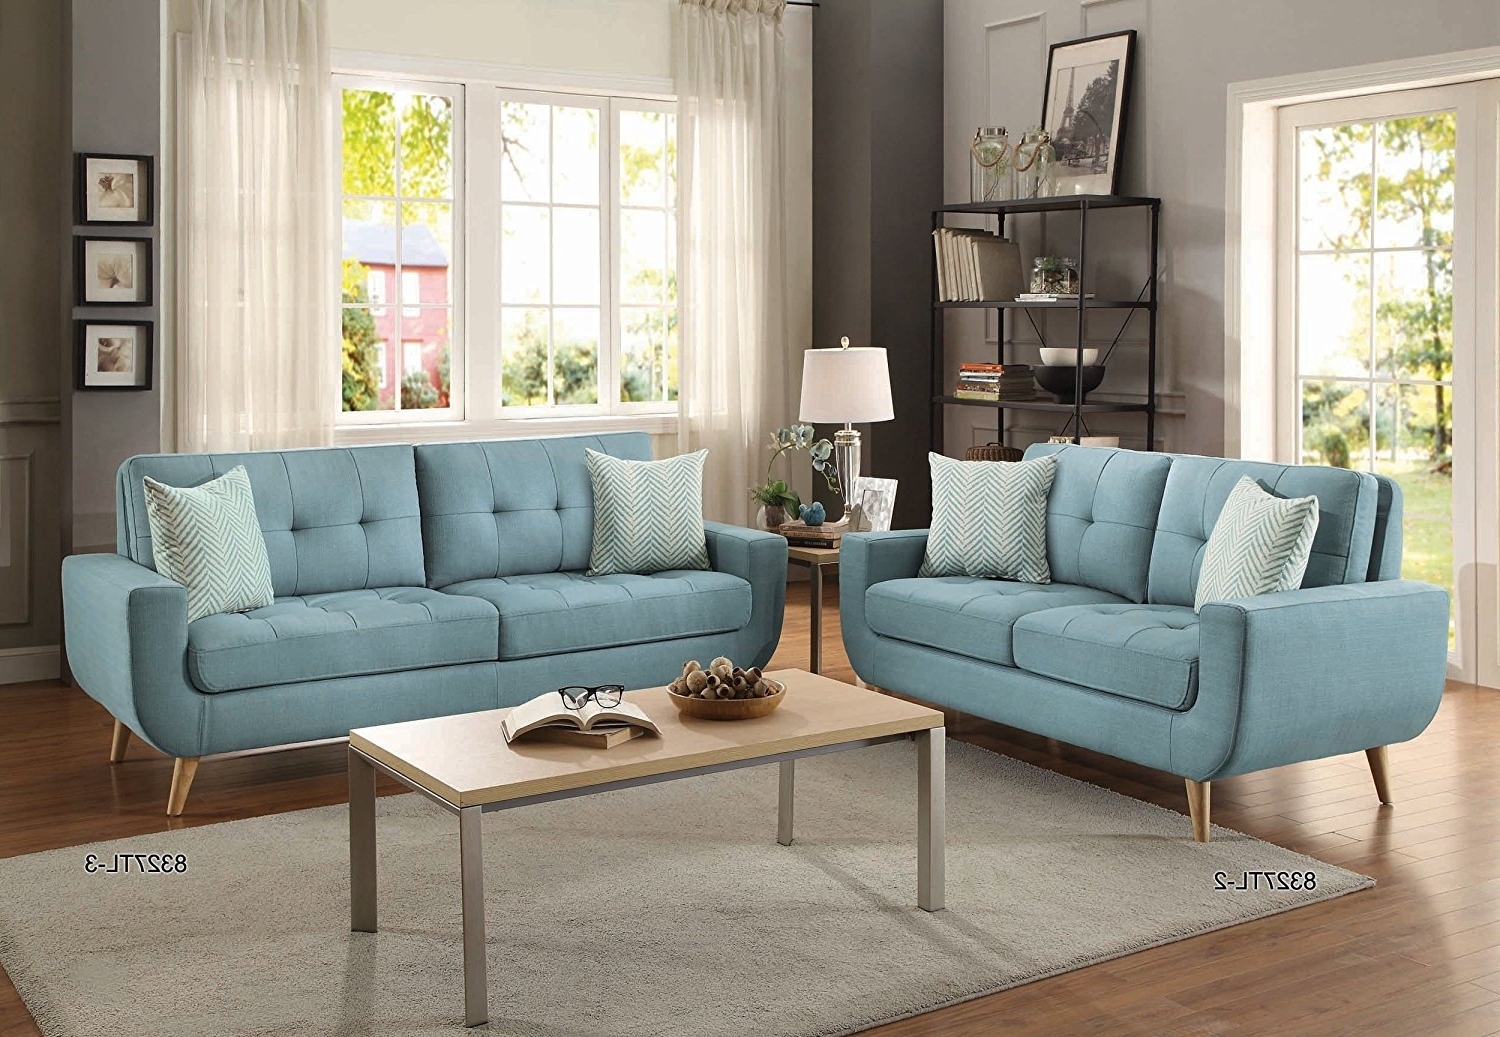 Furniture : Klaussner Hybrid Sofa Sofa Sale January Klaussner Within Current Jackson Tn Sectional Sofas (View 18 of 20)